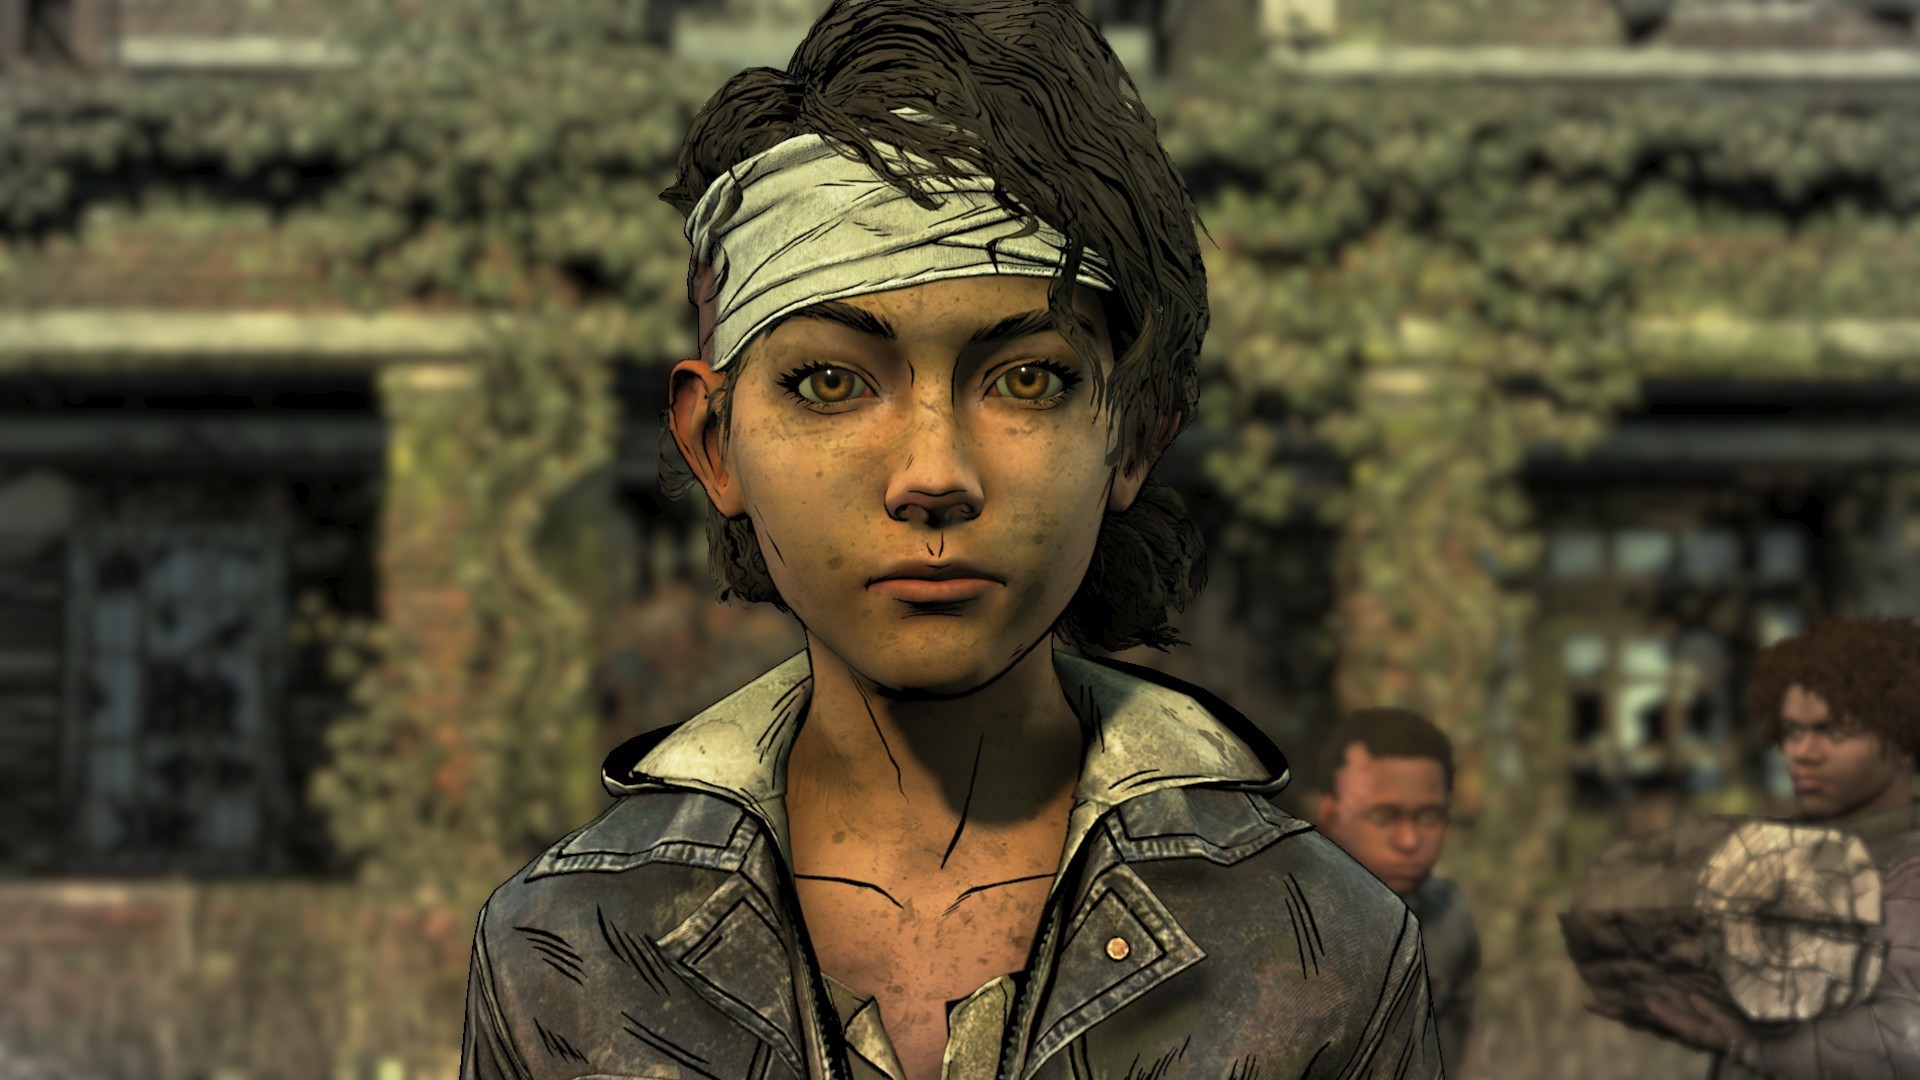 New Season A Return To Form For The Story Of Clementine